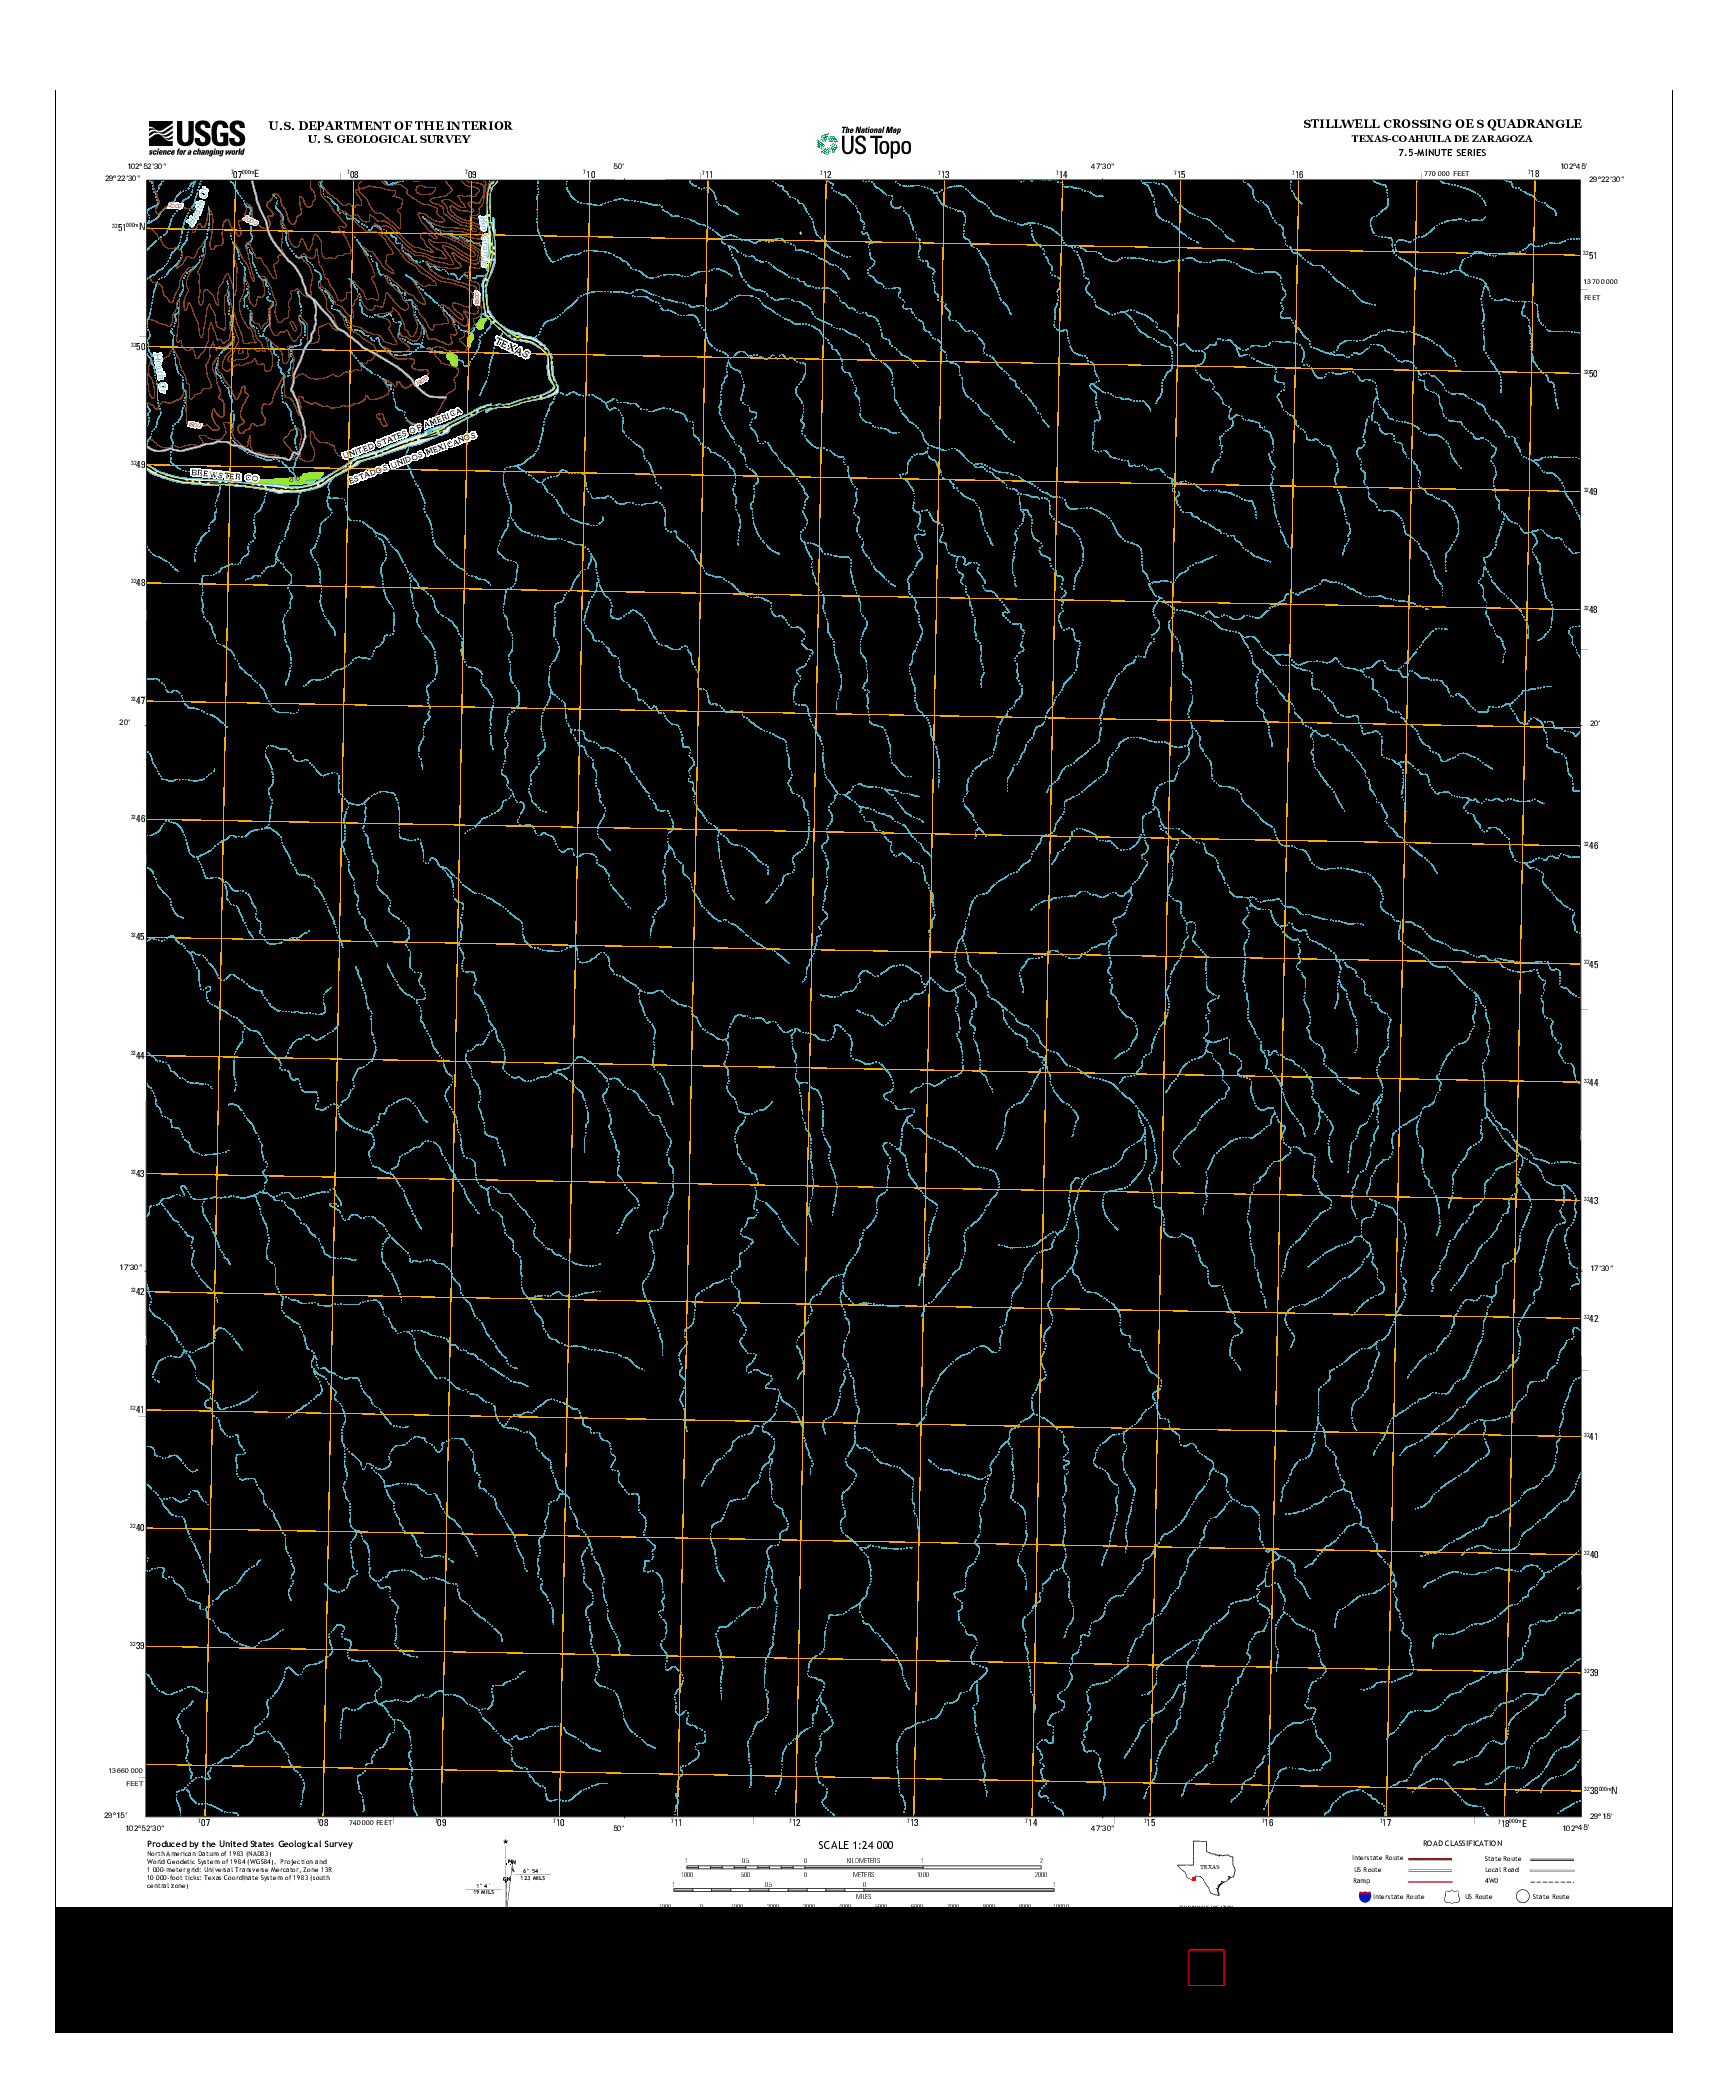 USGS US TOPO 7.5-MINUTE MAP FOR STILLWELL CROSSING OE S, TX-COA 2013